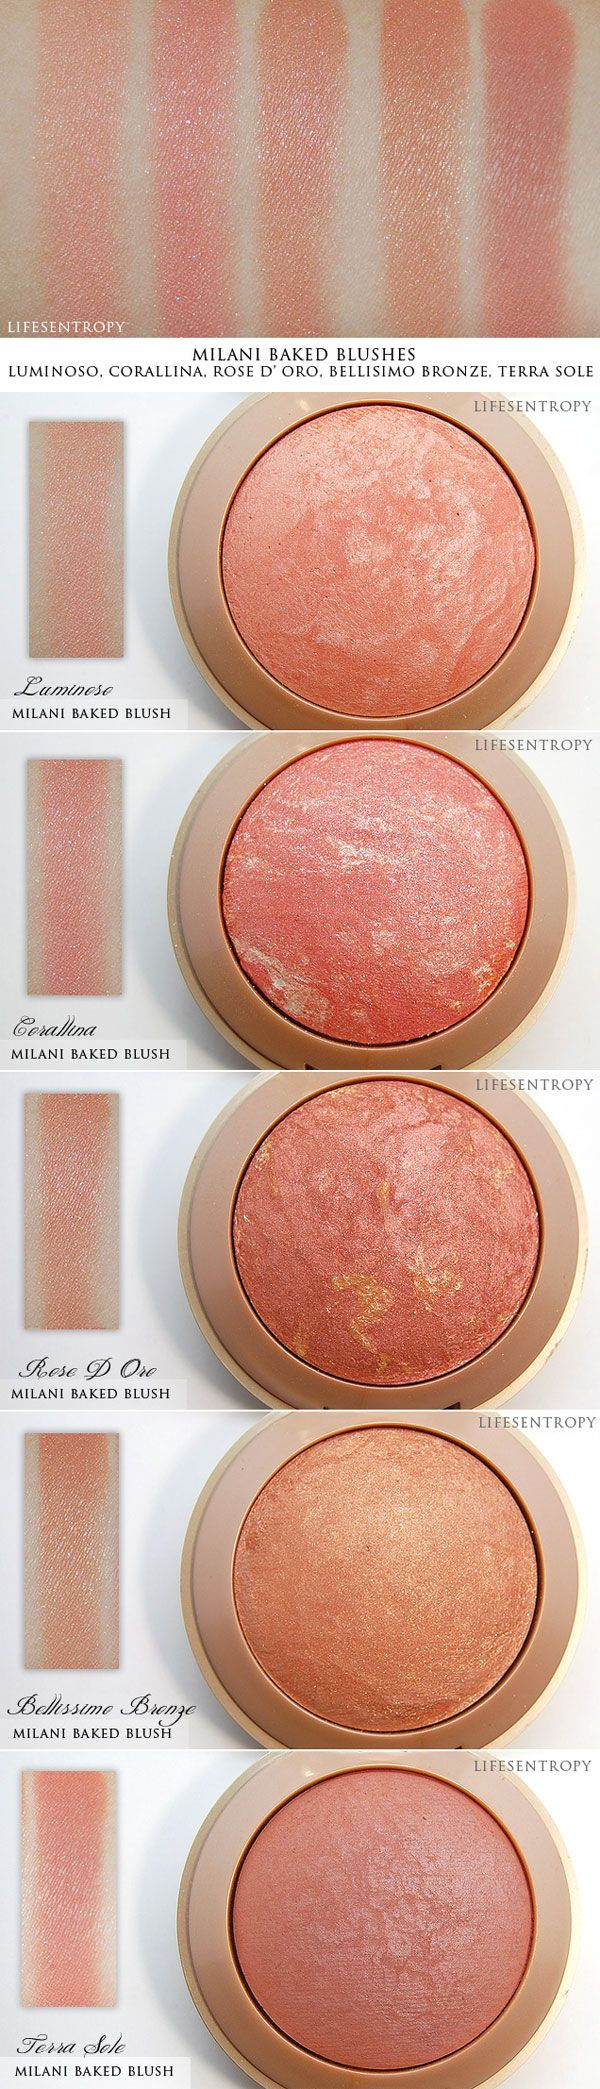 WANT IT :: SWATCHES :: Milani Baked Blush...I want Luminoso (compared to NARS Orgasm), Rose D'Oro (compared to MAC MSF Stereo Rose), Coralina (a pinky coral w/ silver glitter), Belissimo Bronze (shimmery peachy gold). Terra Sole is a matte deep rosy pink. | #lifesentropy